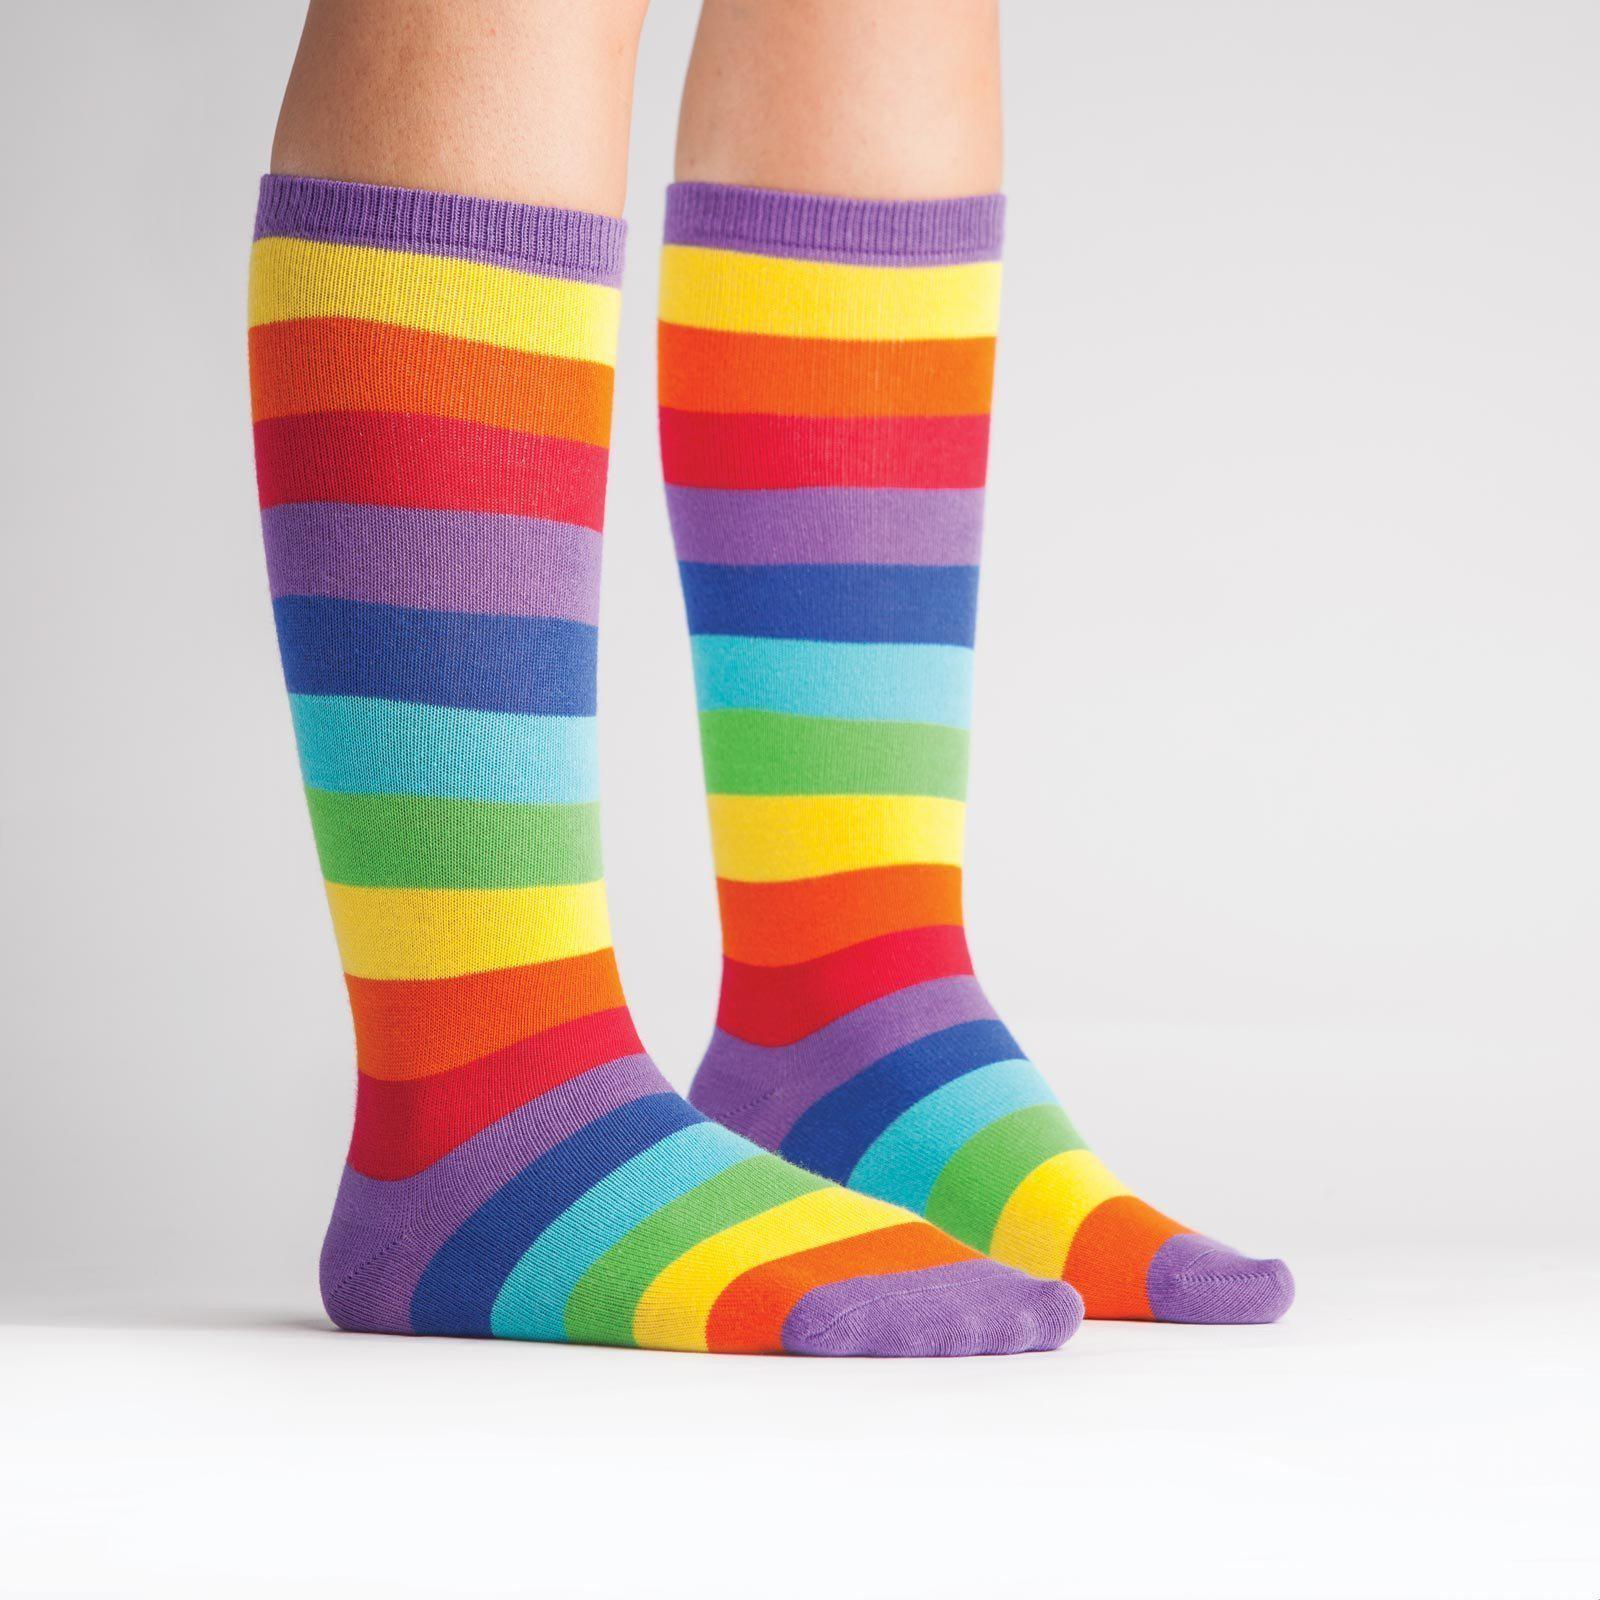 Sock It To Me - Junior Super Juicy Knee High Socks | Kids' - Knock Your Socks Off